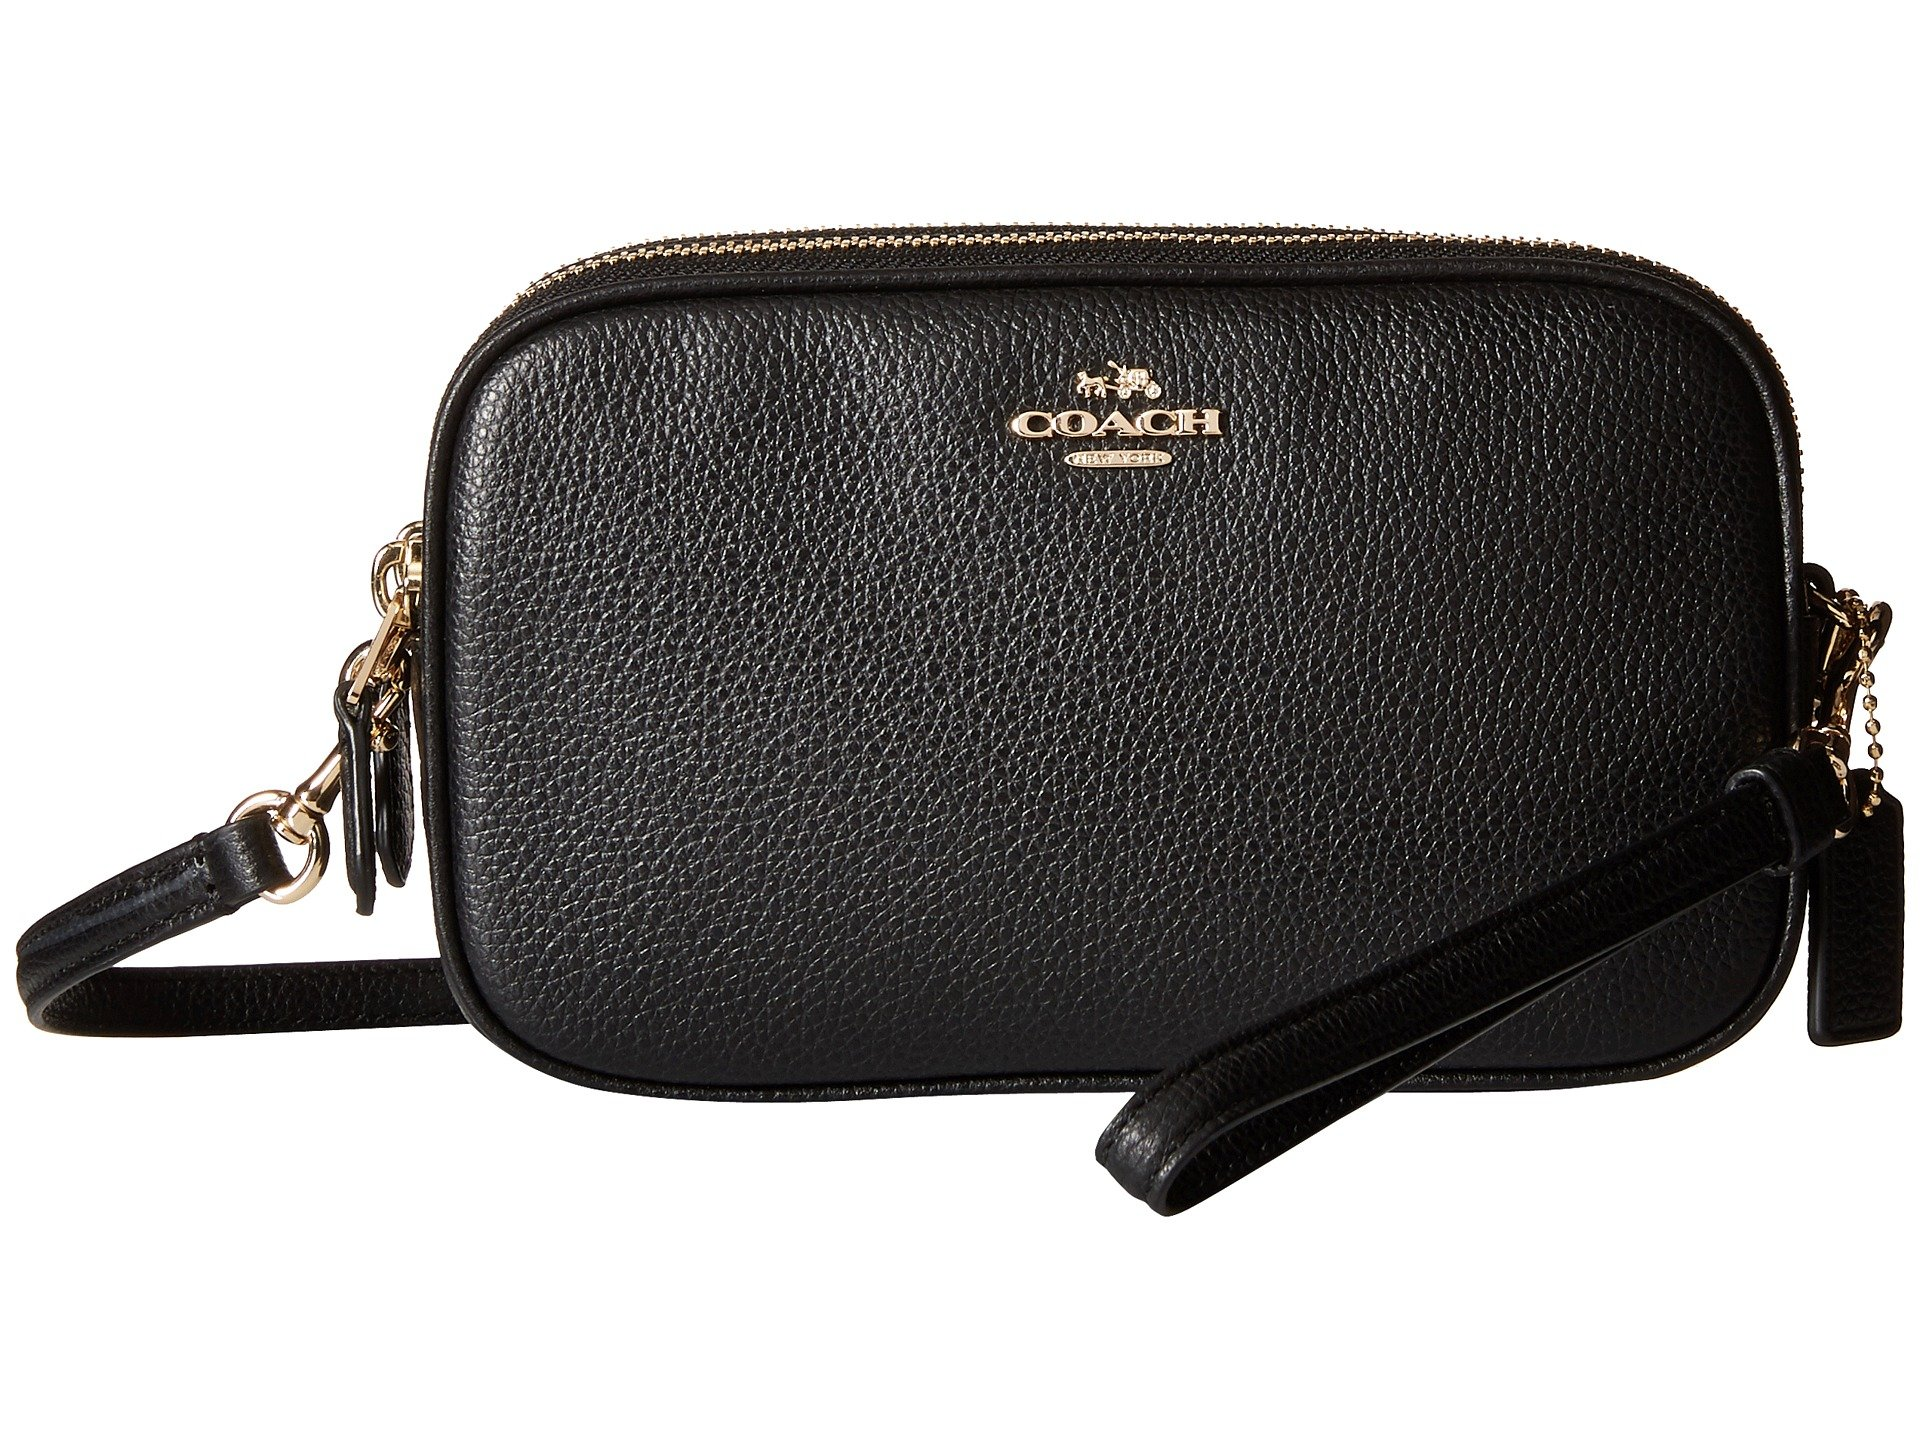 68713fd134 COACH Latest Styles + FREE SHIPPING